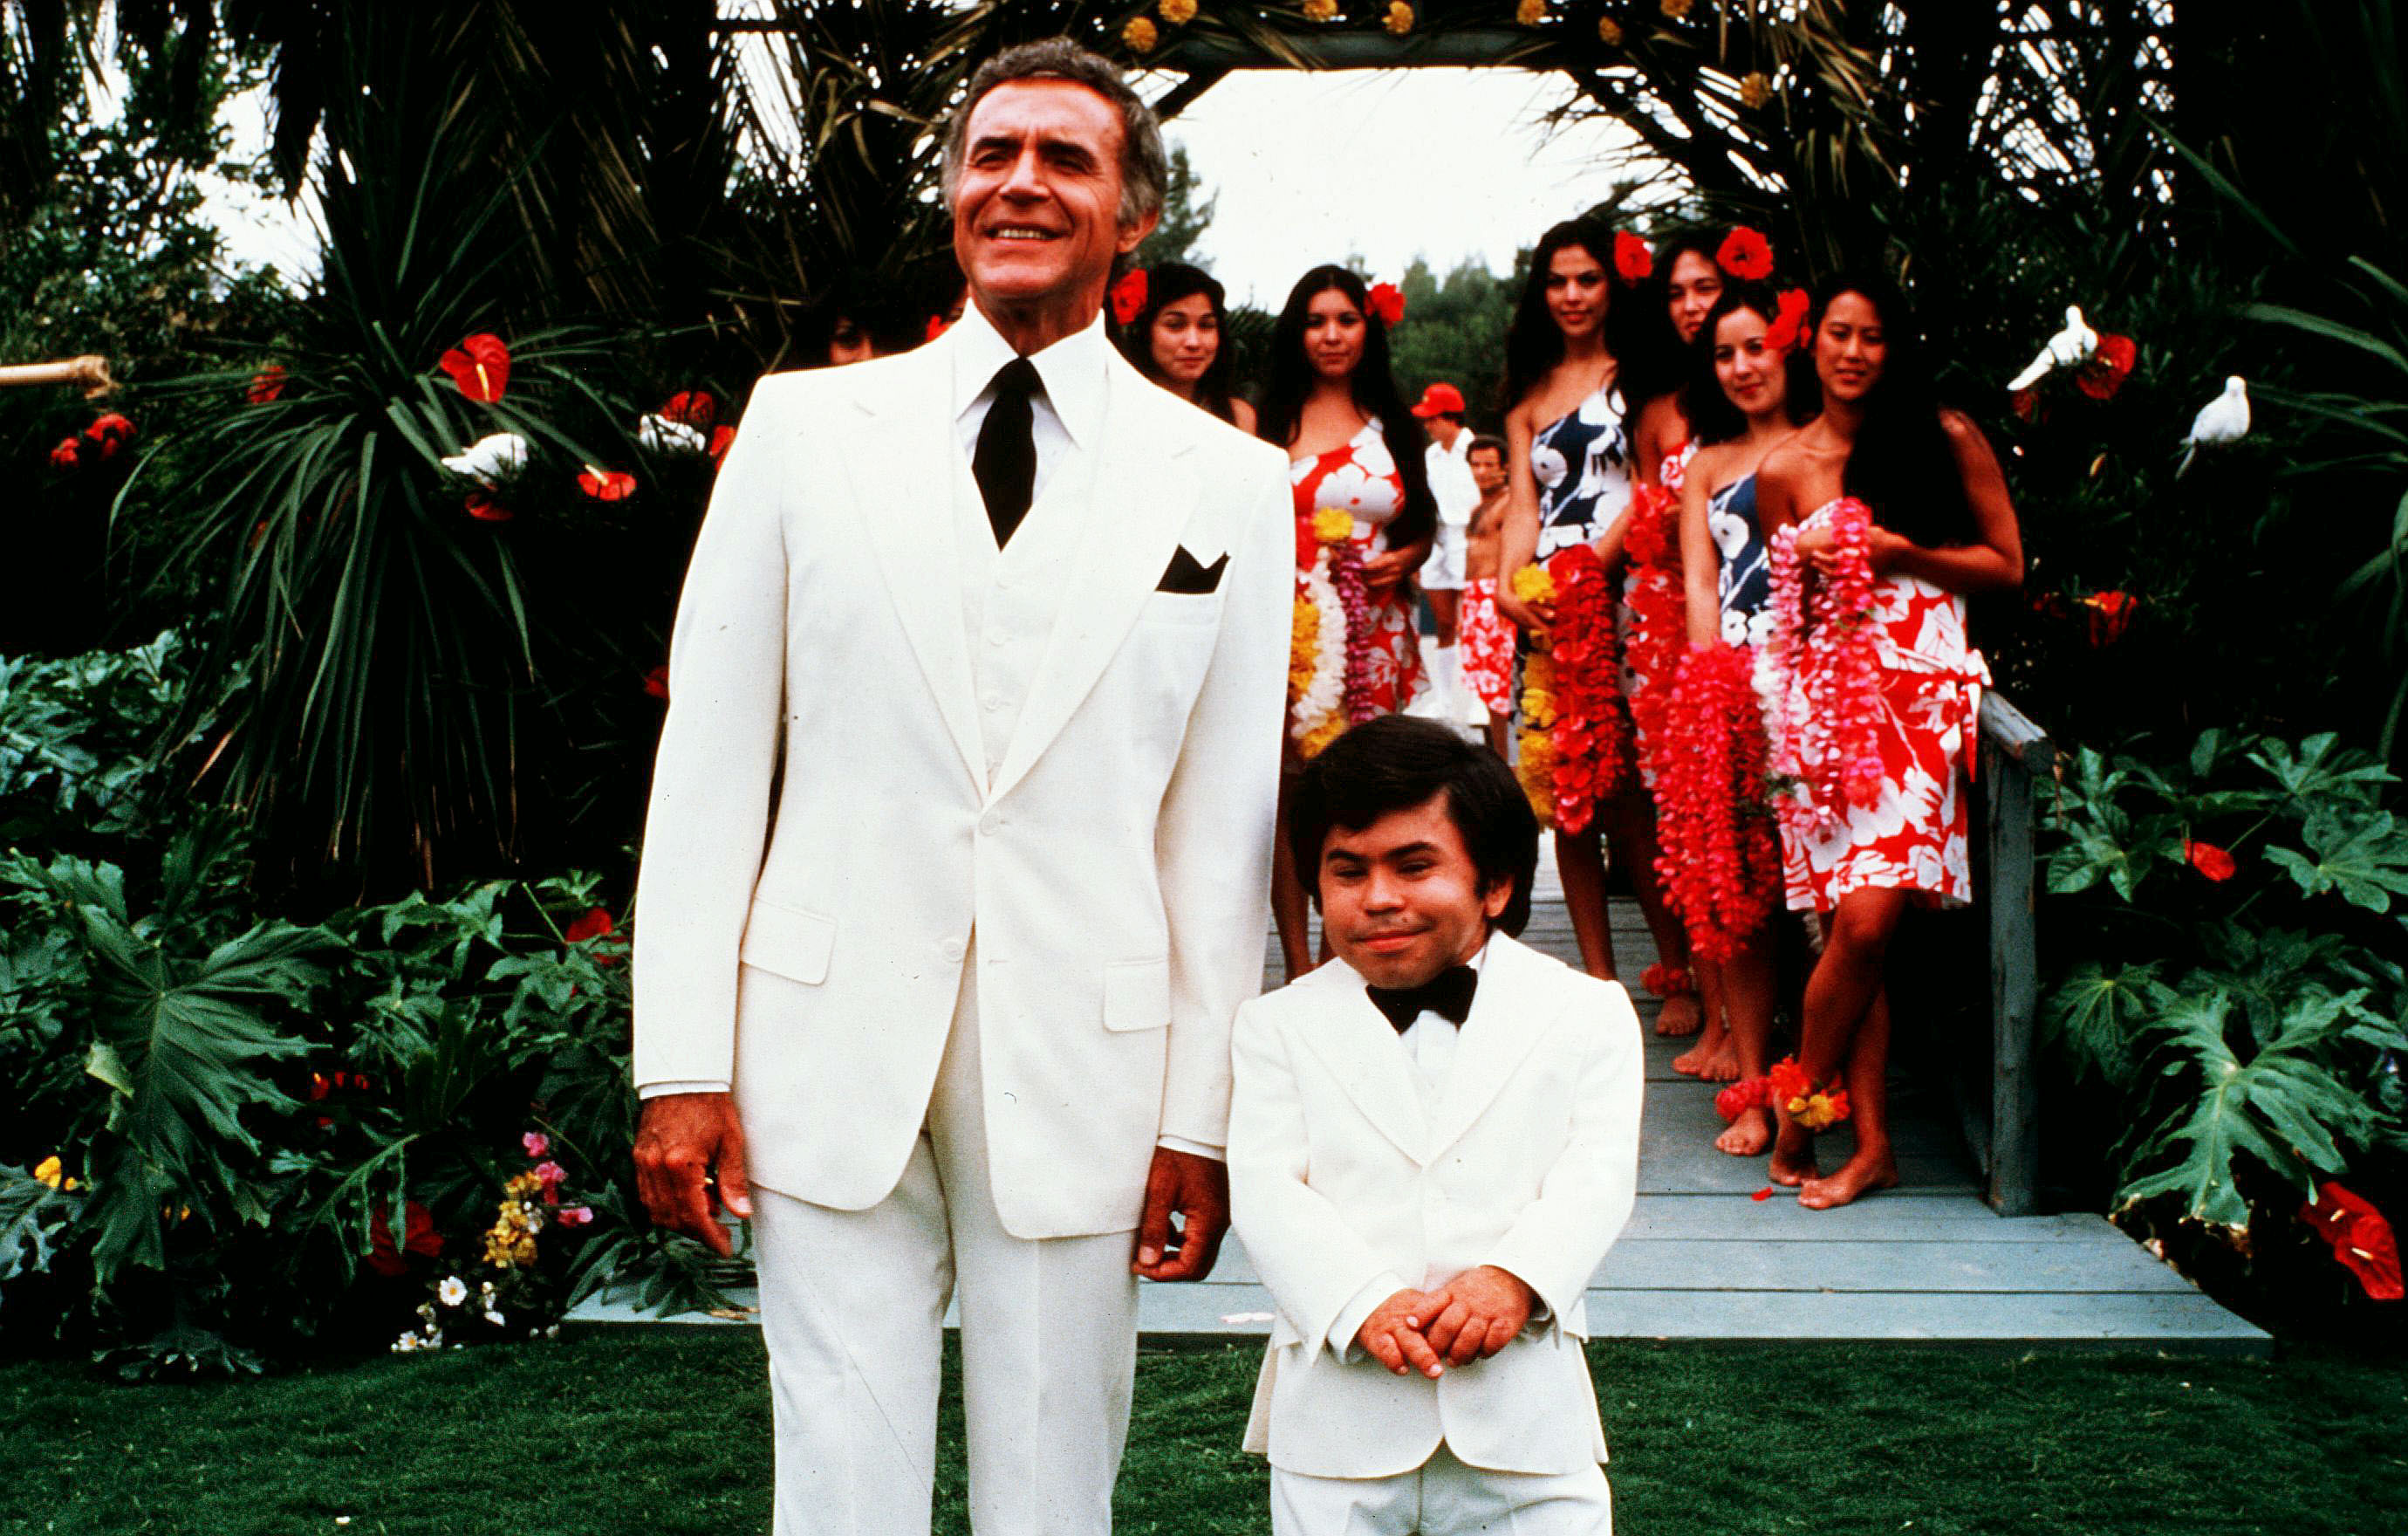 Editorial use only. No book cover usage.Mandatory Credit: Photo by Abc-Tv/Kobal/Shutterstock (5865320b) Ricardo Montalban, Herve Villechaize Fantasy Island ABC-TV USA Television